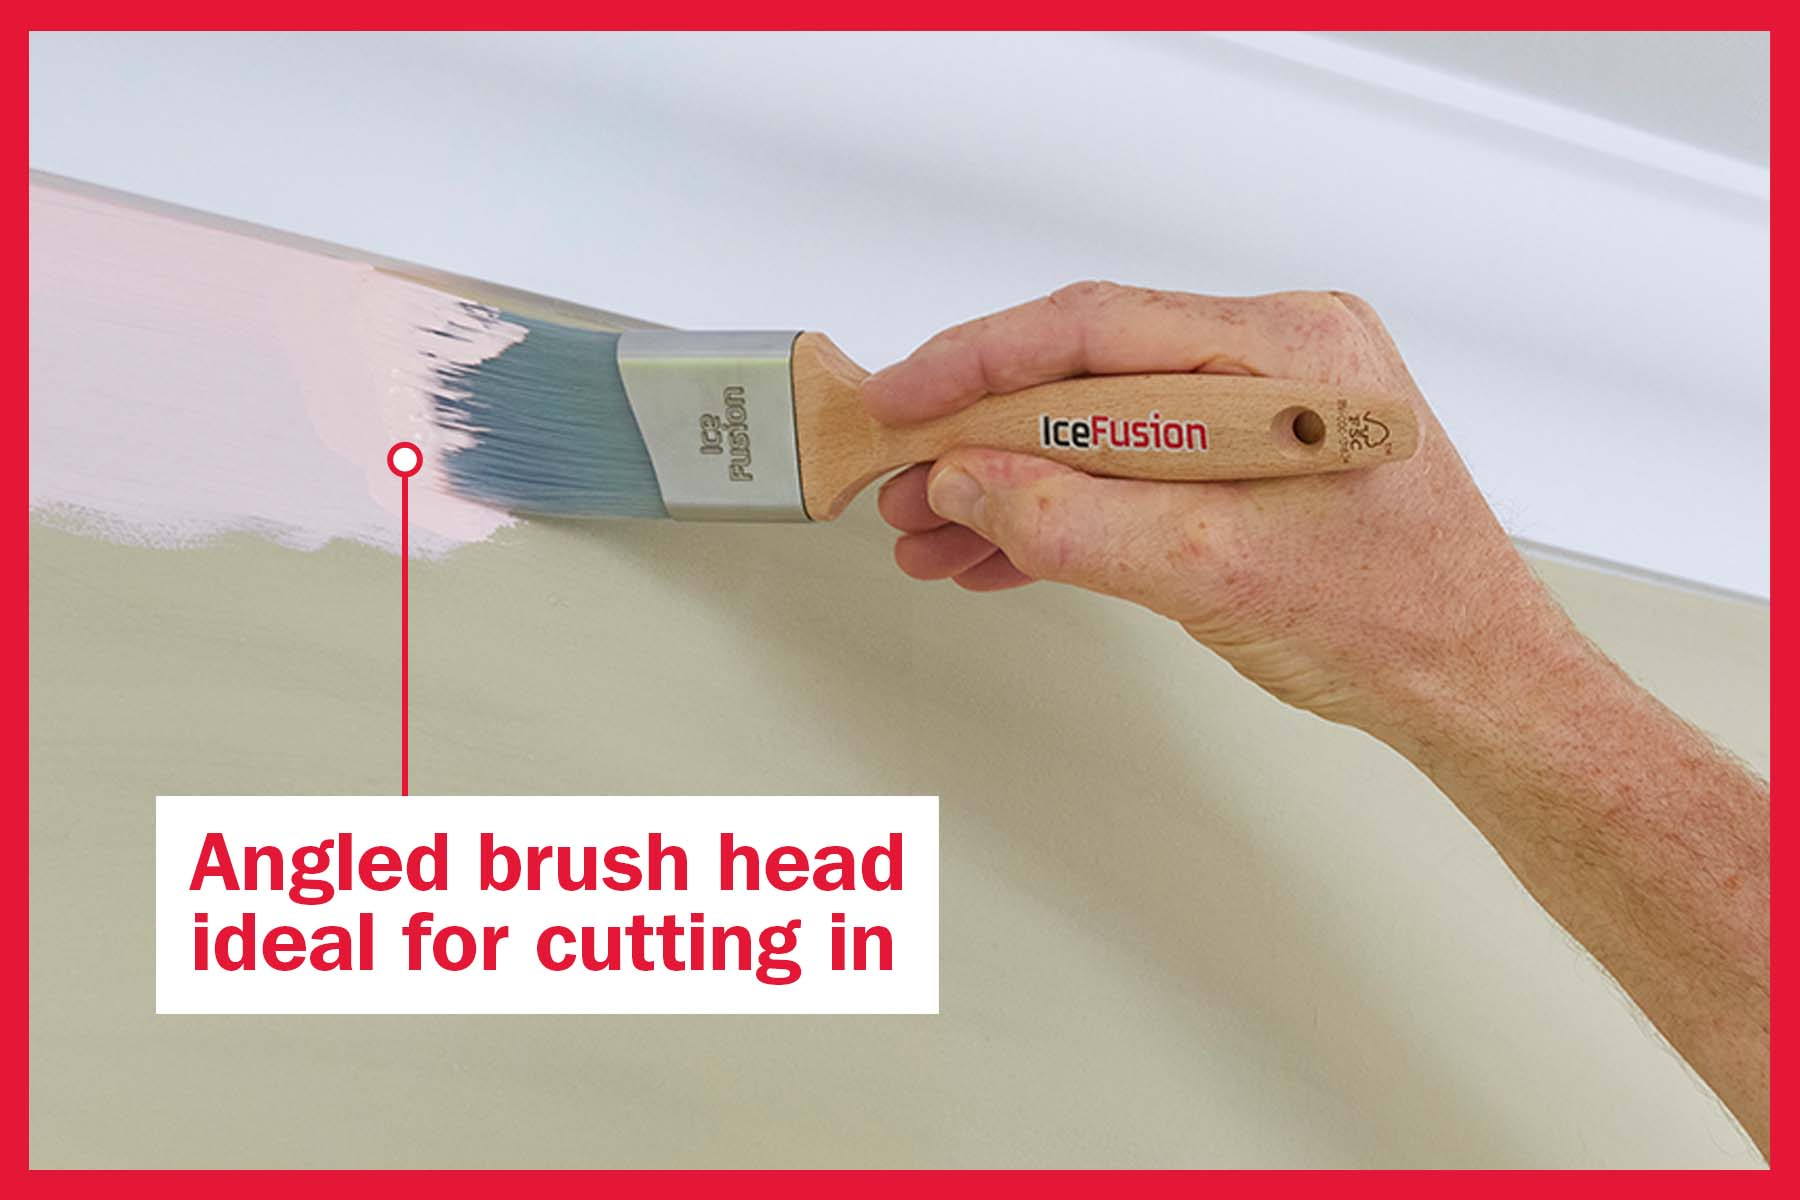 Angle brush head ideal for cutting in